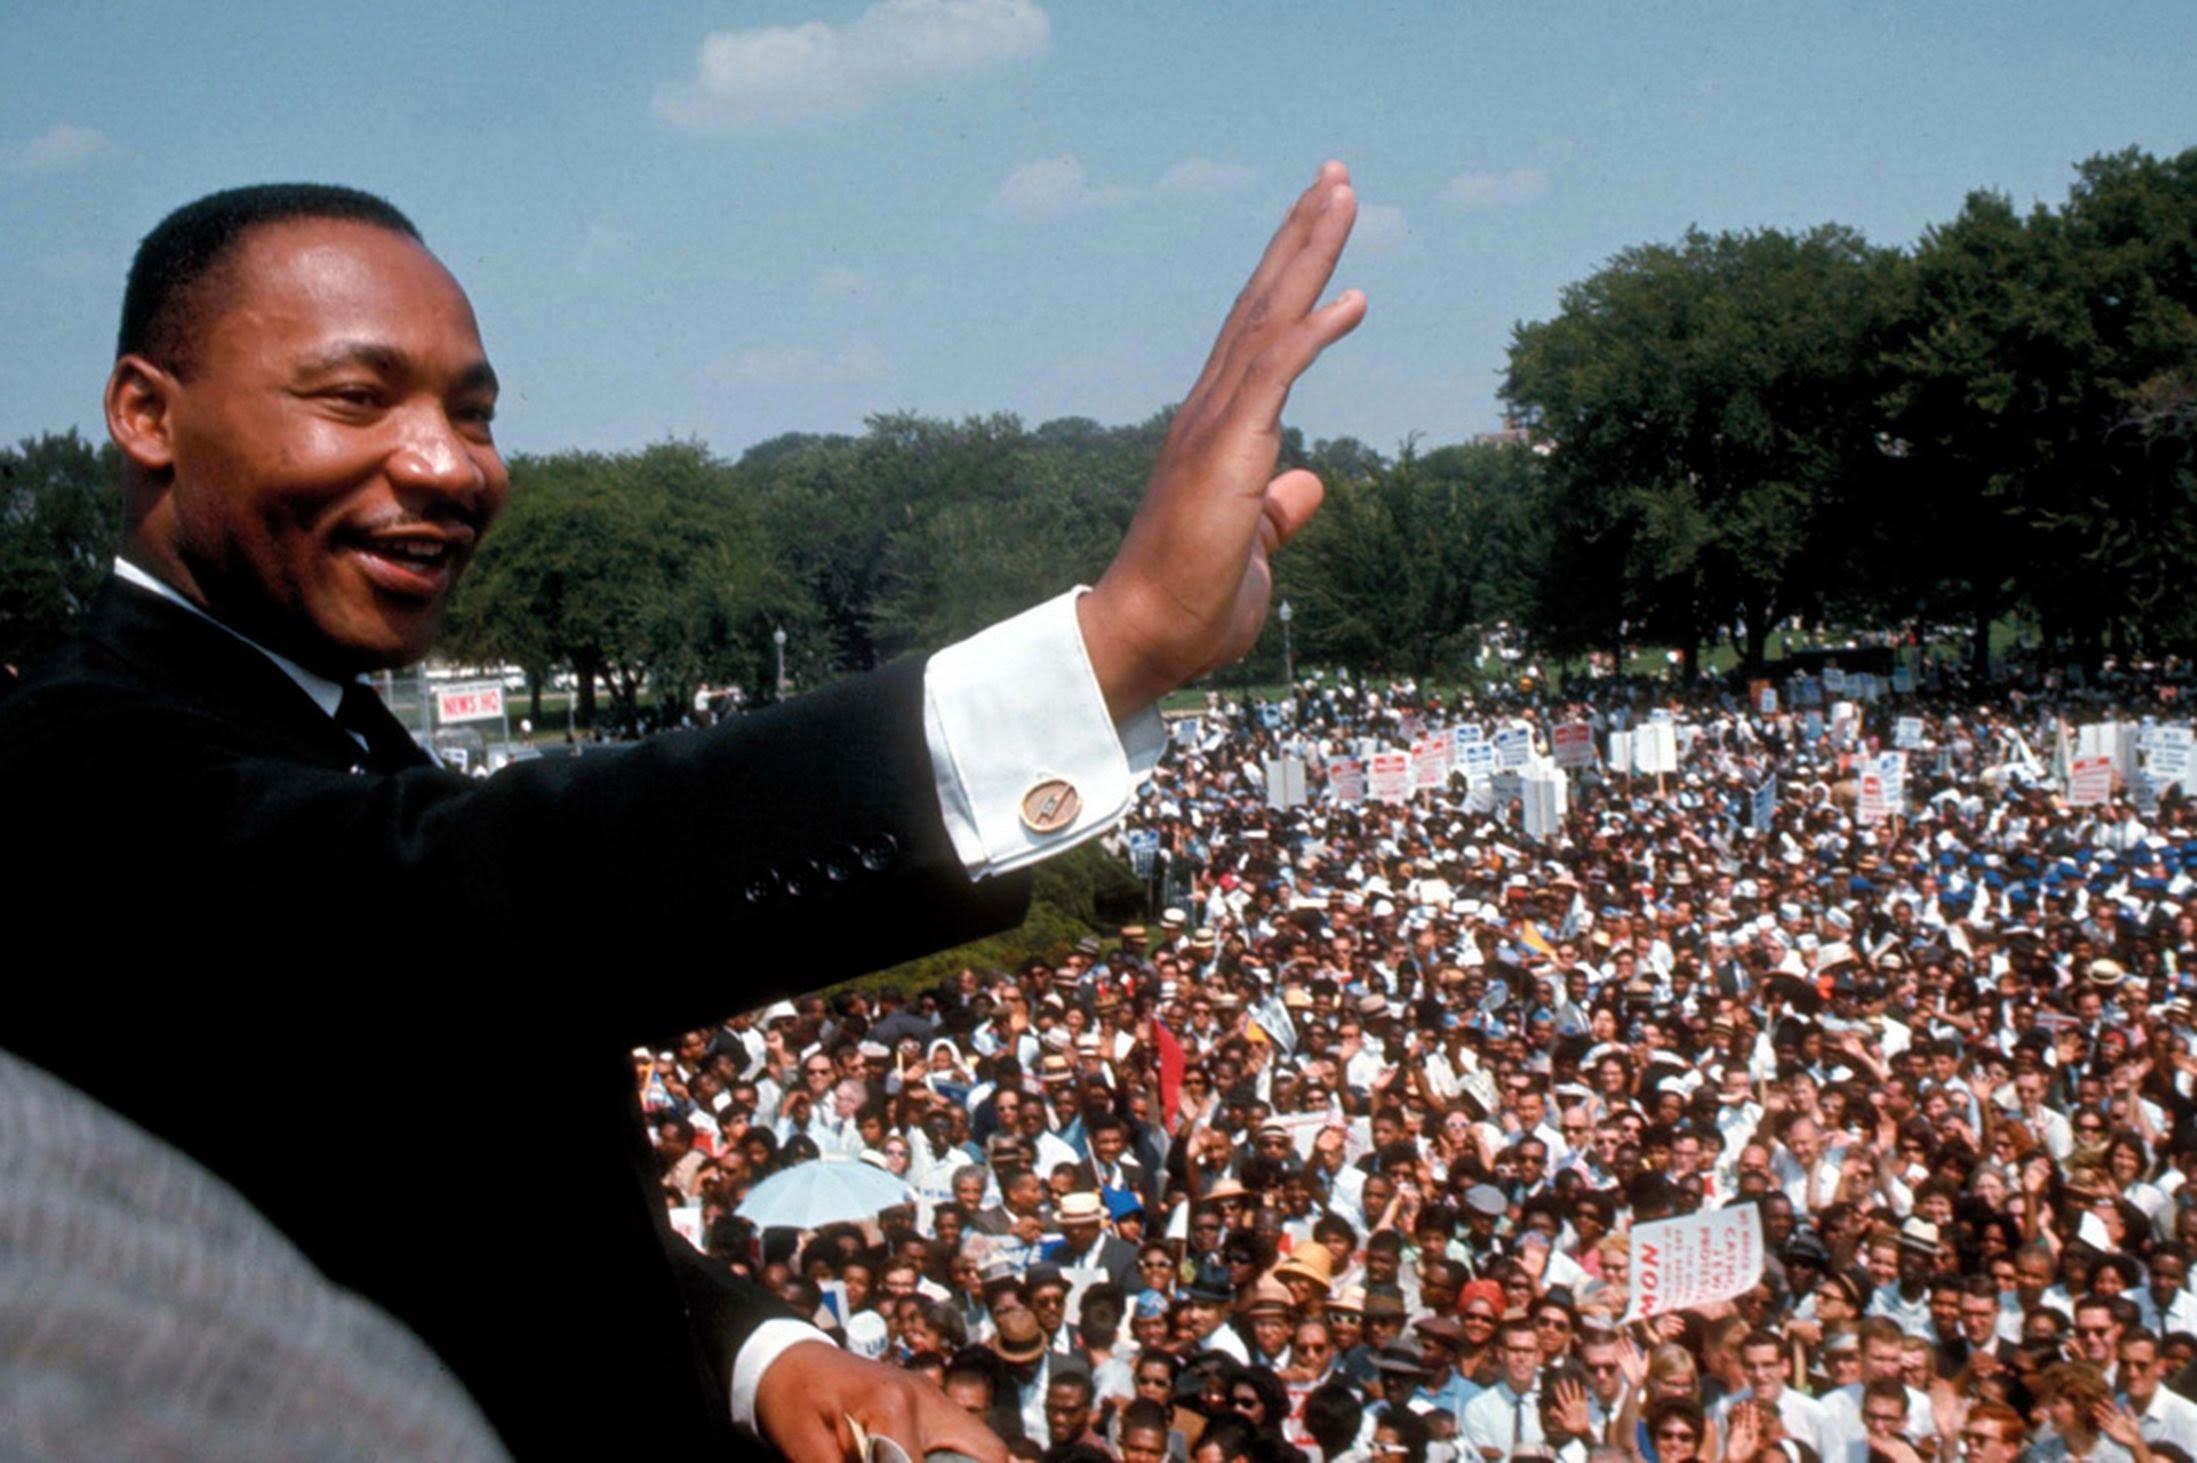 Martin Luther King Jr Hd Wallpapers Free Pics 2197x1463